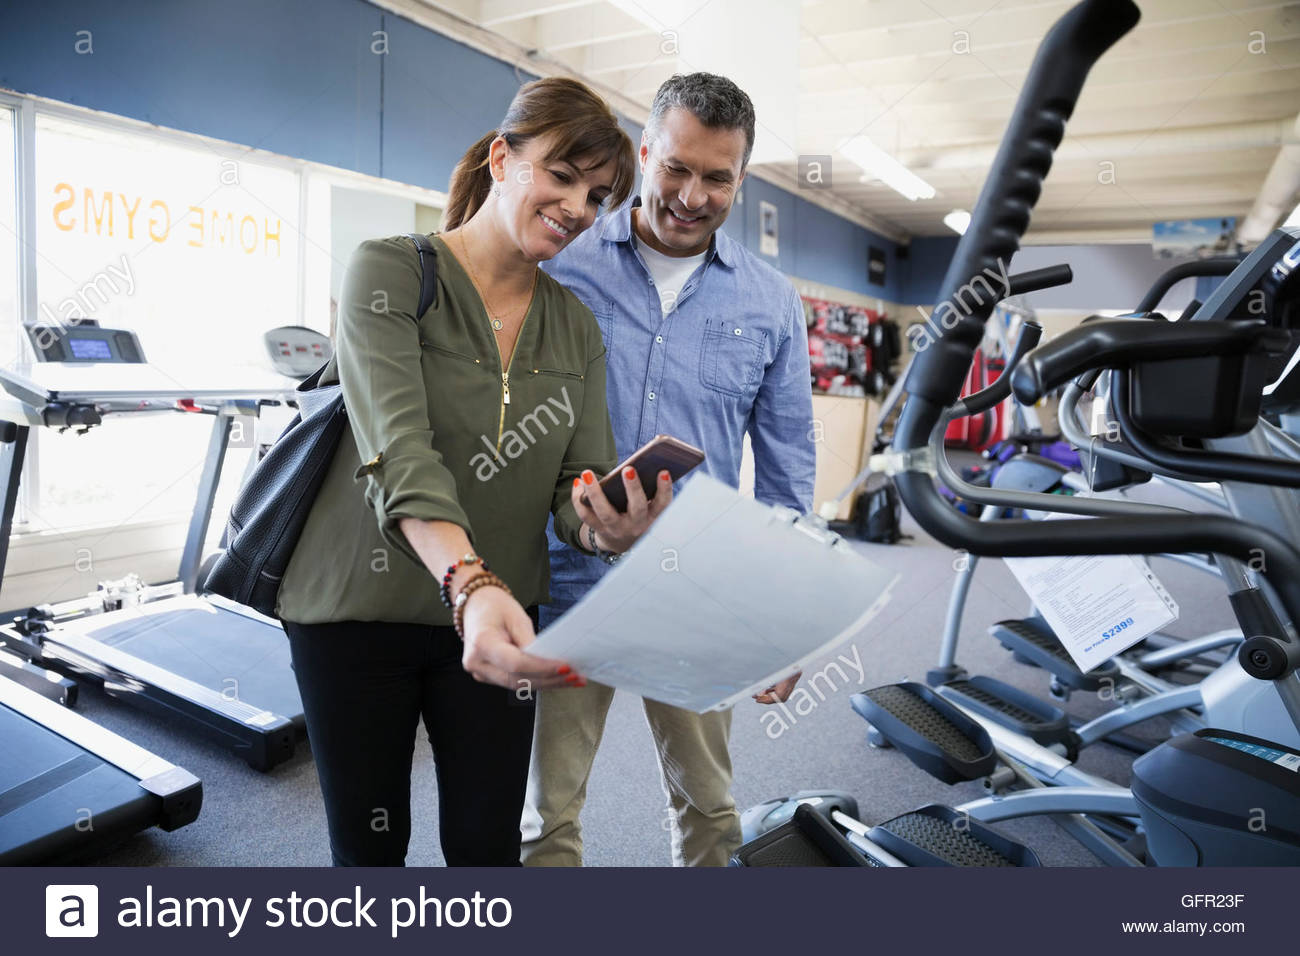 Couple browsing information sign on cardio machine at home gym equipment store - Stock Image